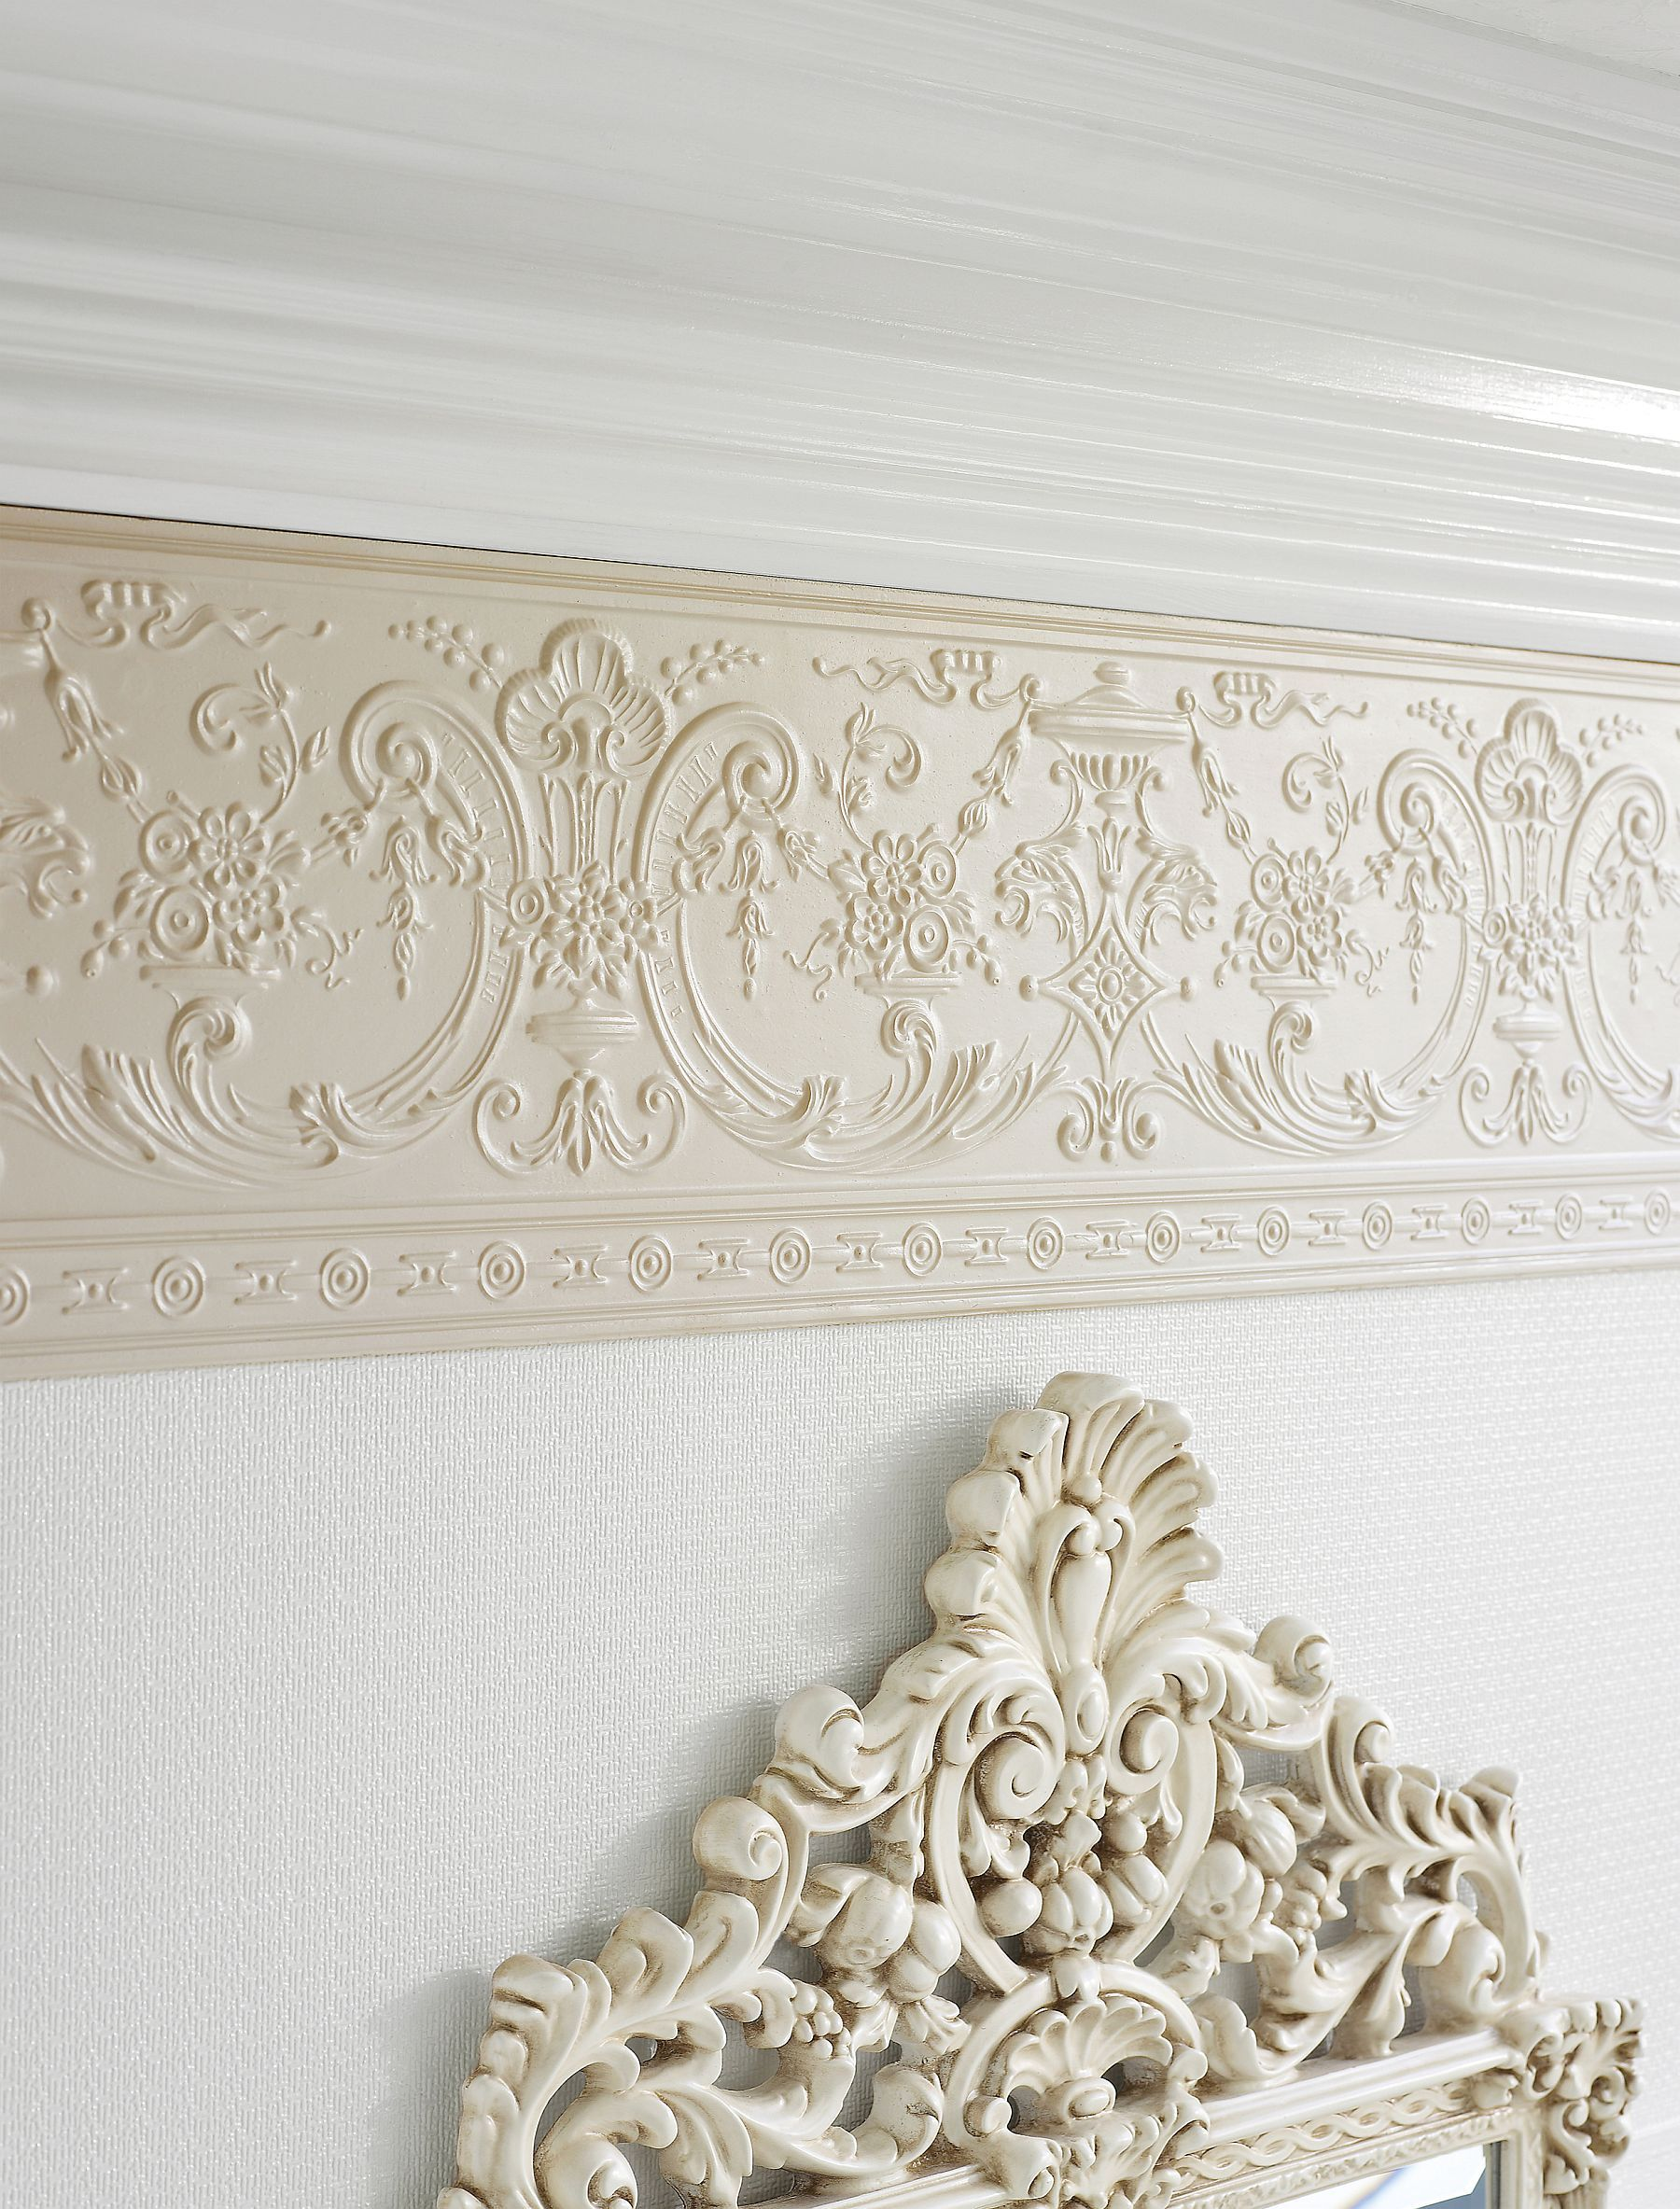 empire frieze by lincrusta paintable rd1957fr faux paintempire frieze paintable border by lincrusta